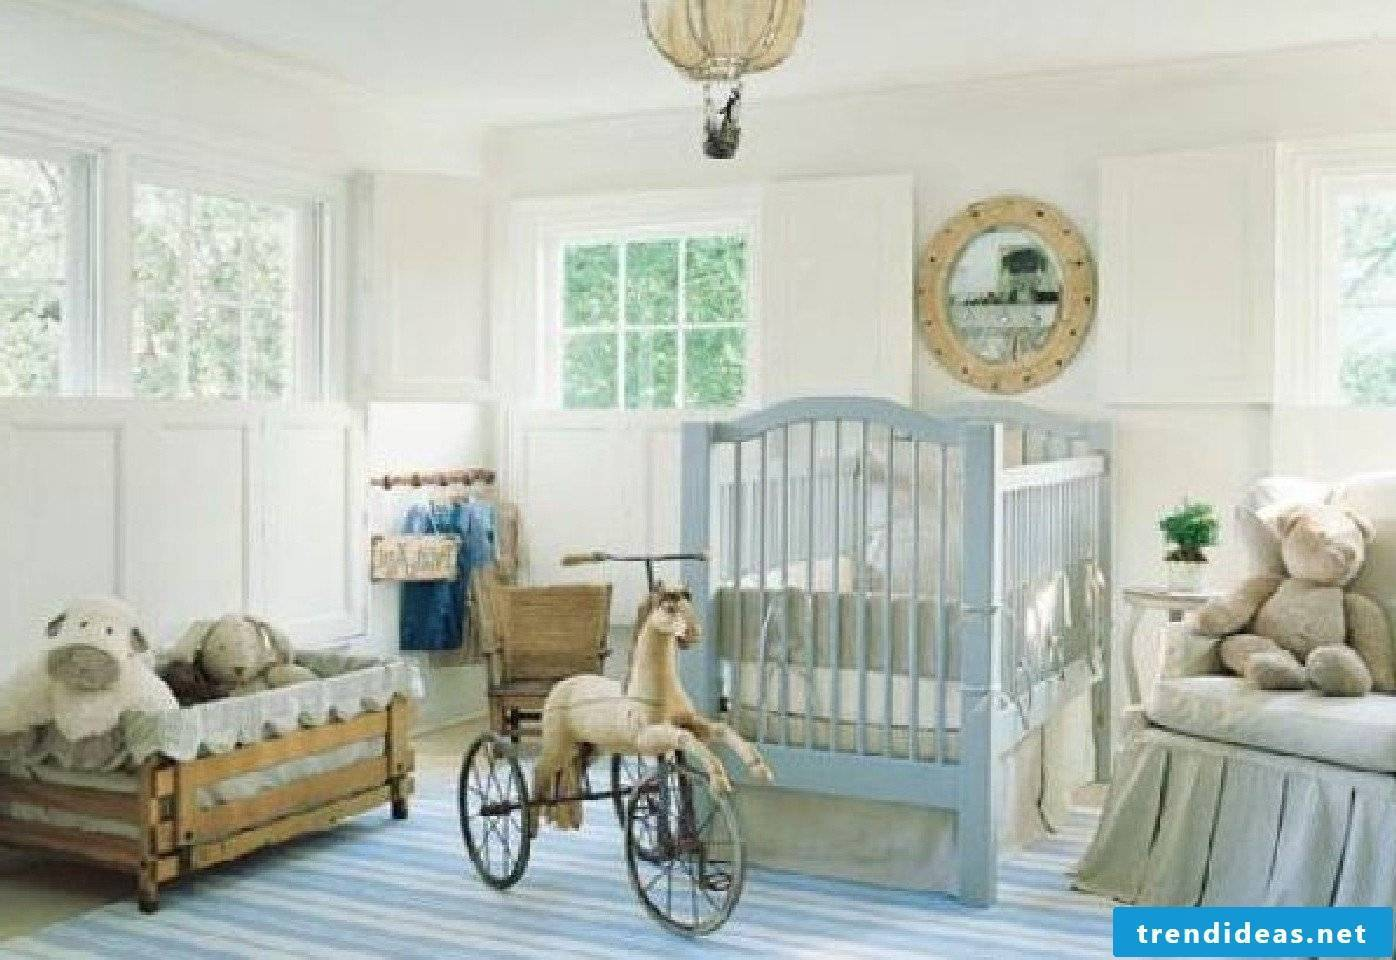 Baby room in rustic style